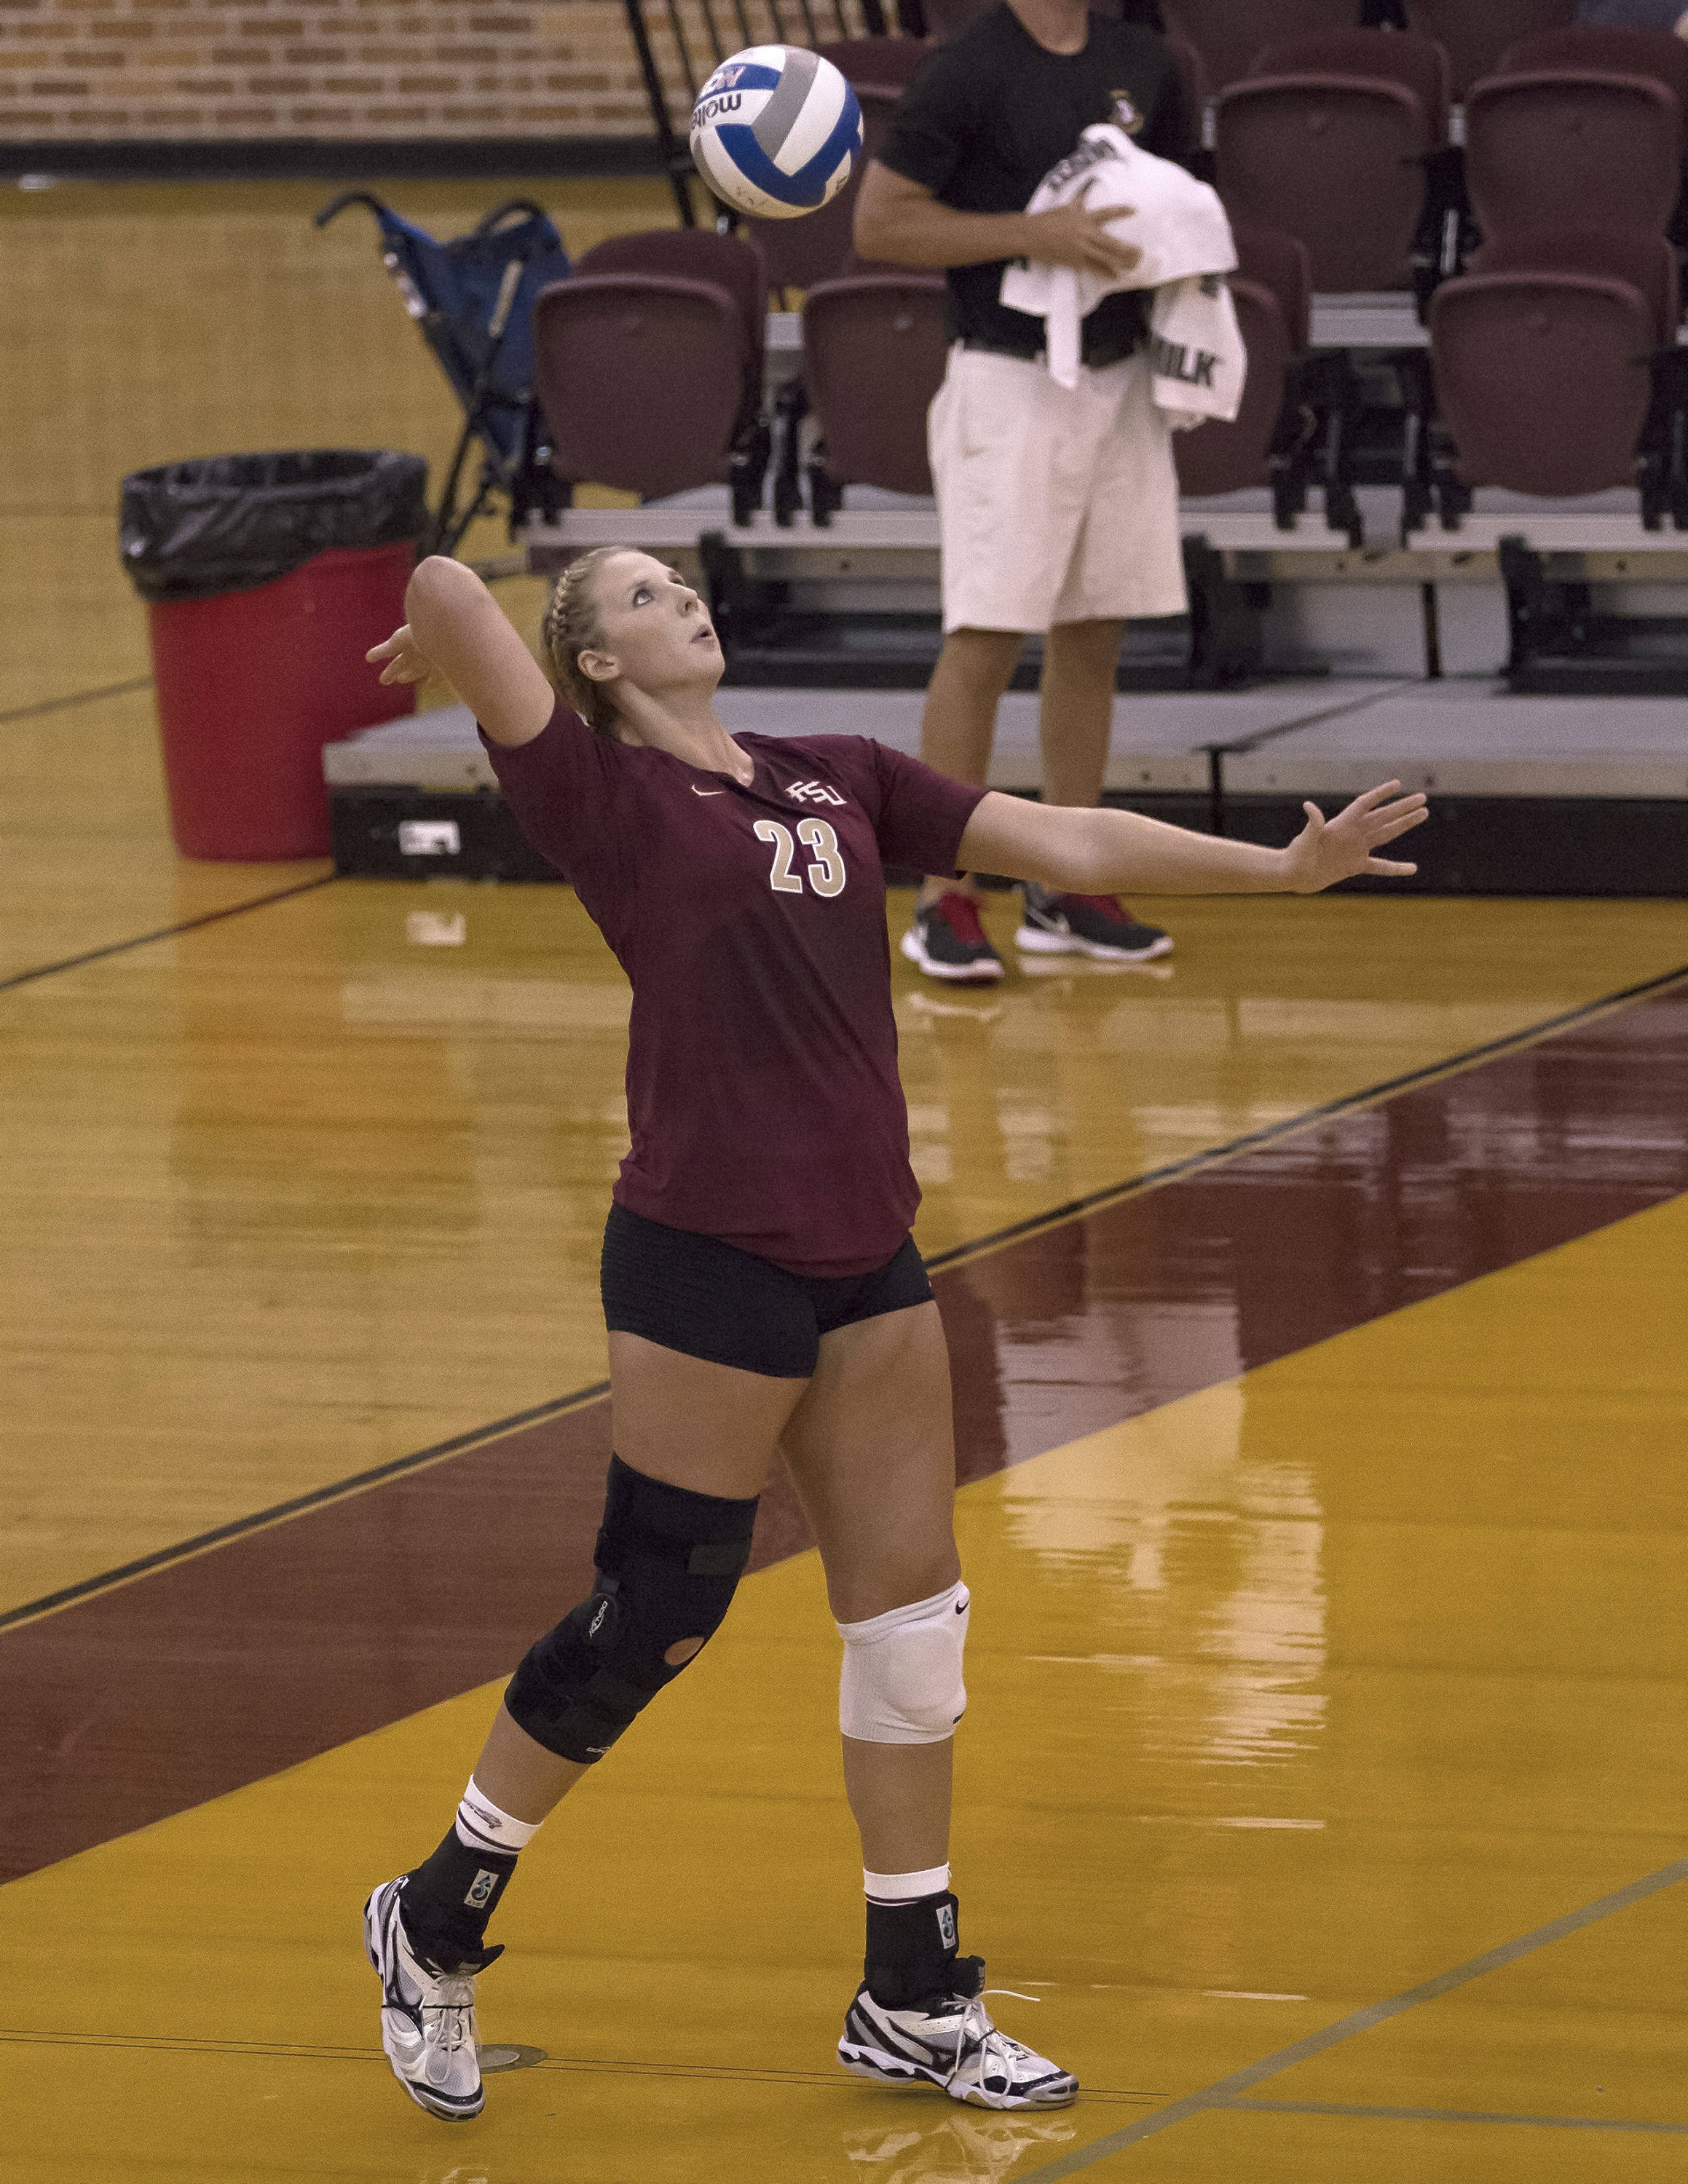 Elise Walch, Garnet and Gold, 8-24-13, (Photo by Steve Musco)